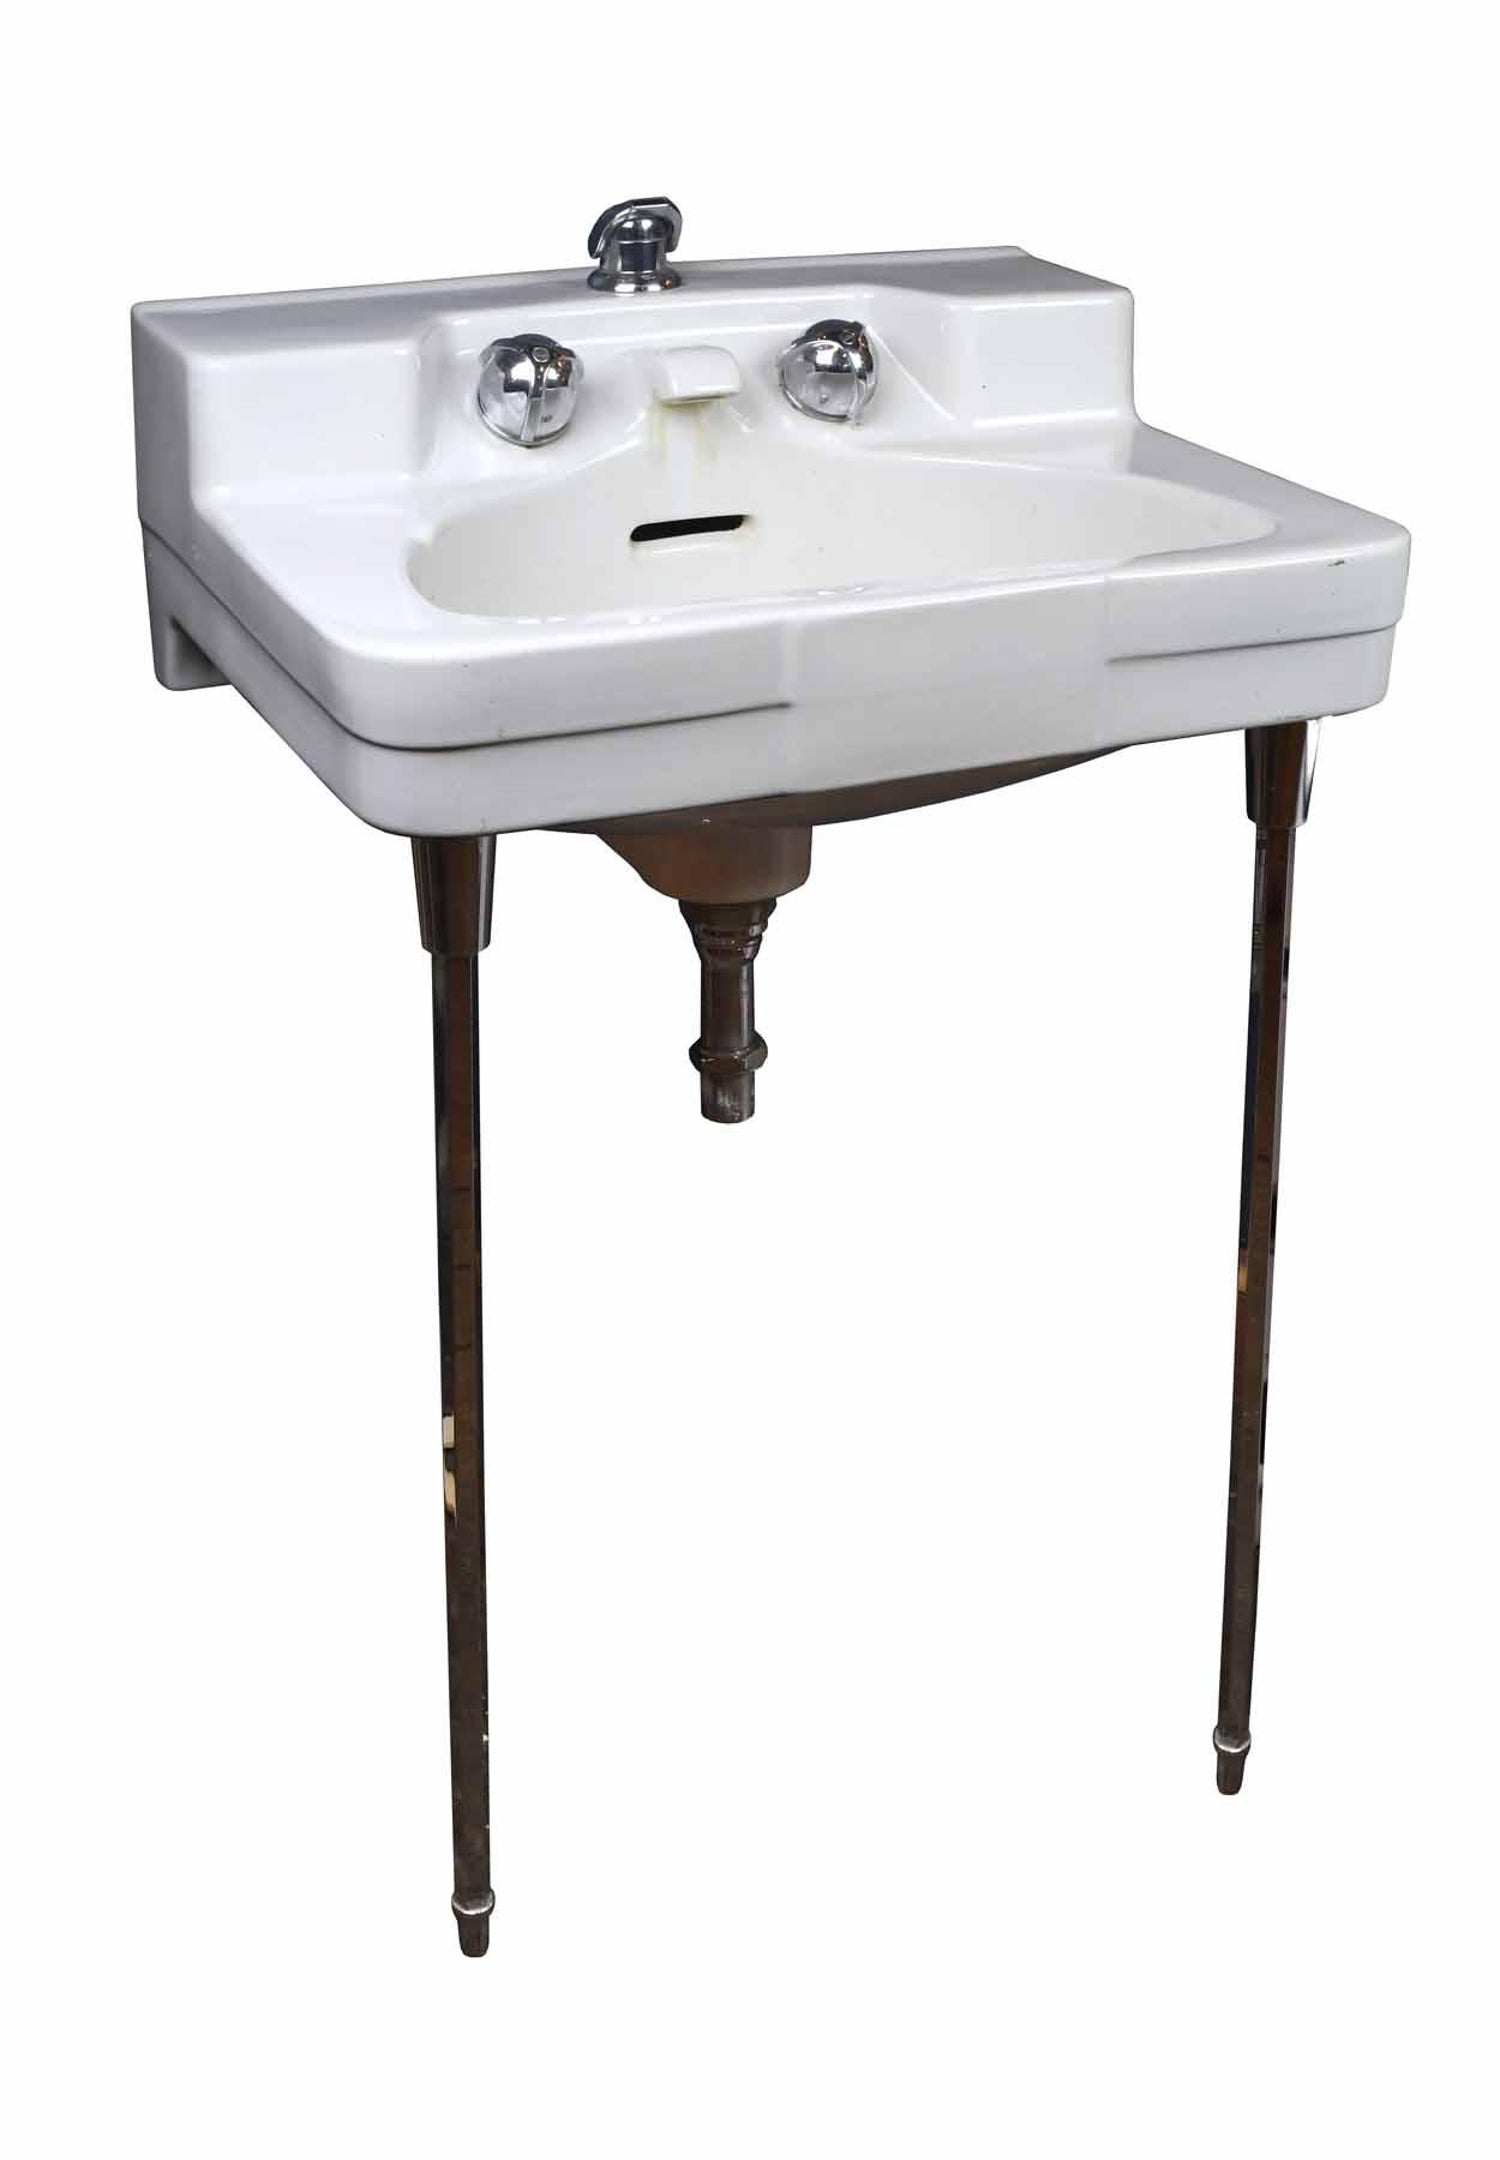 1950s Wall Mount Sink With Chrome Legs At 1stdibs